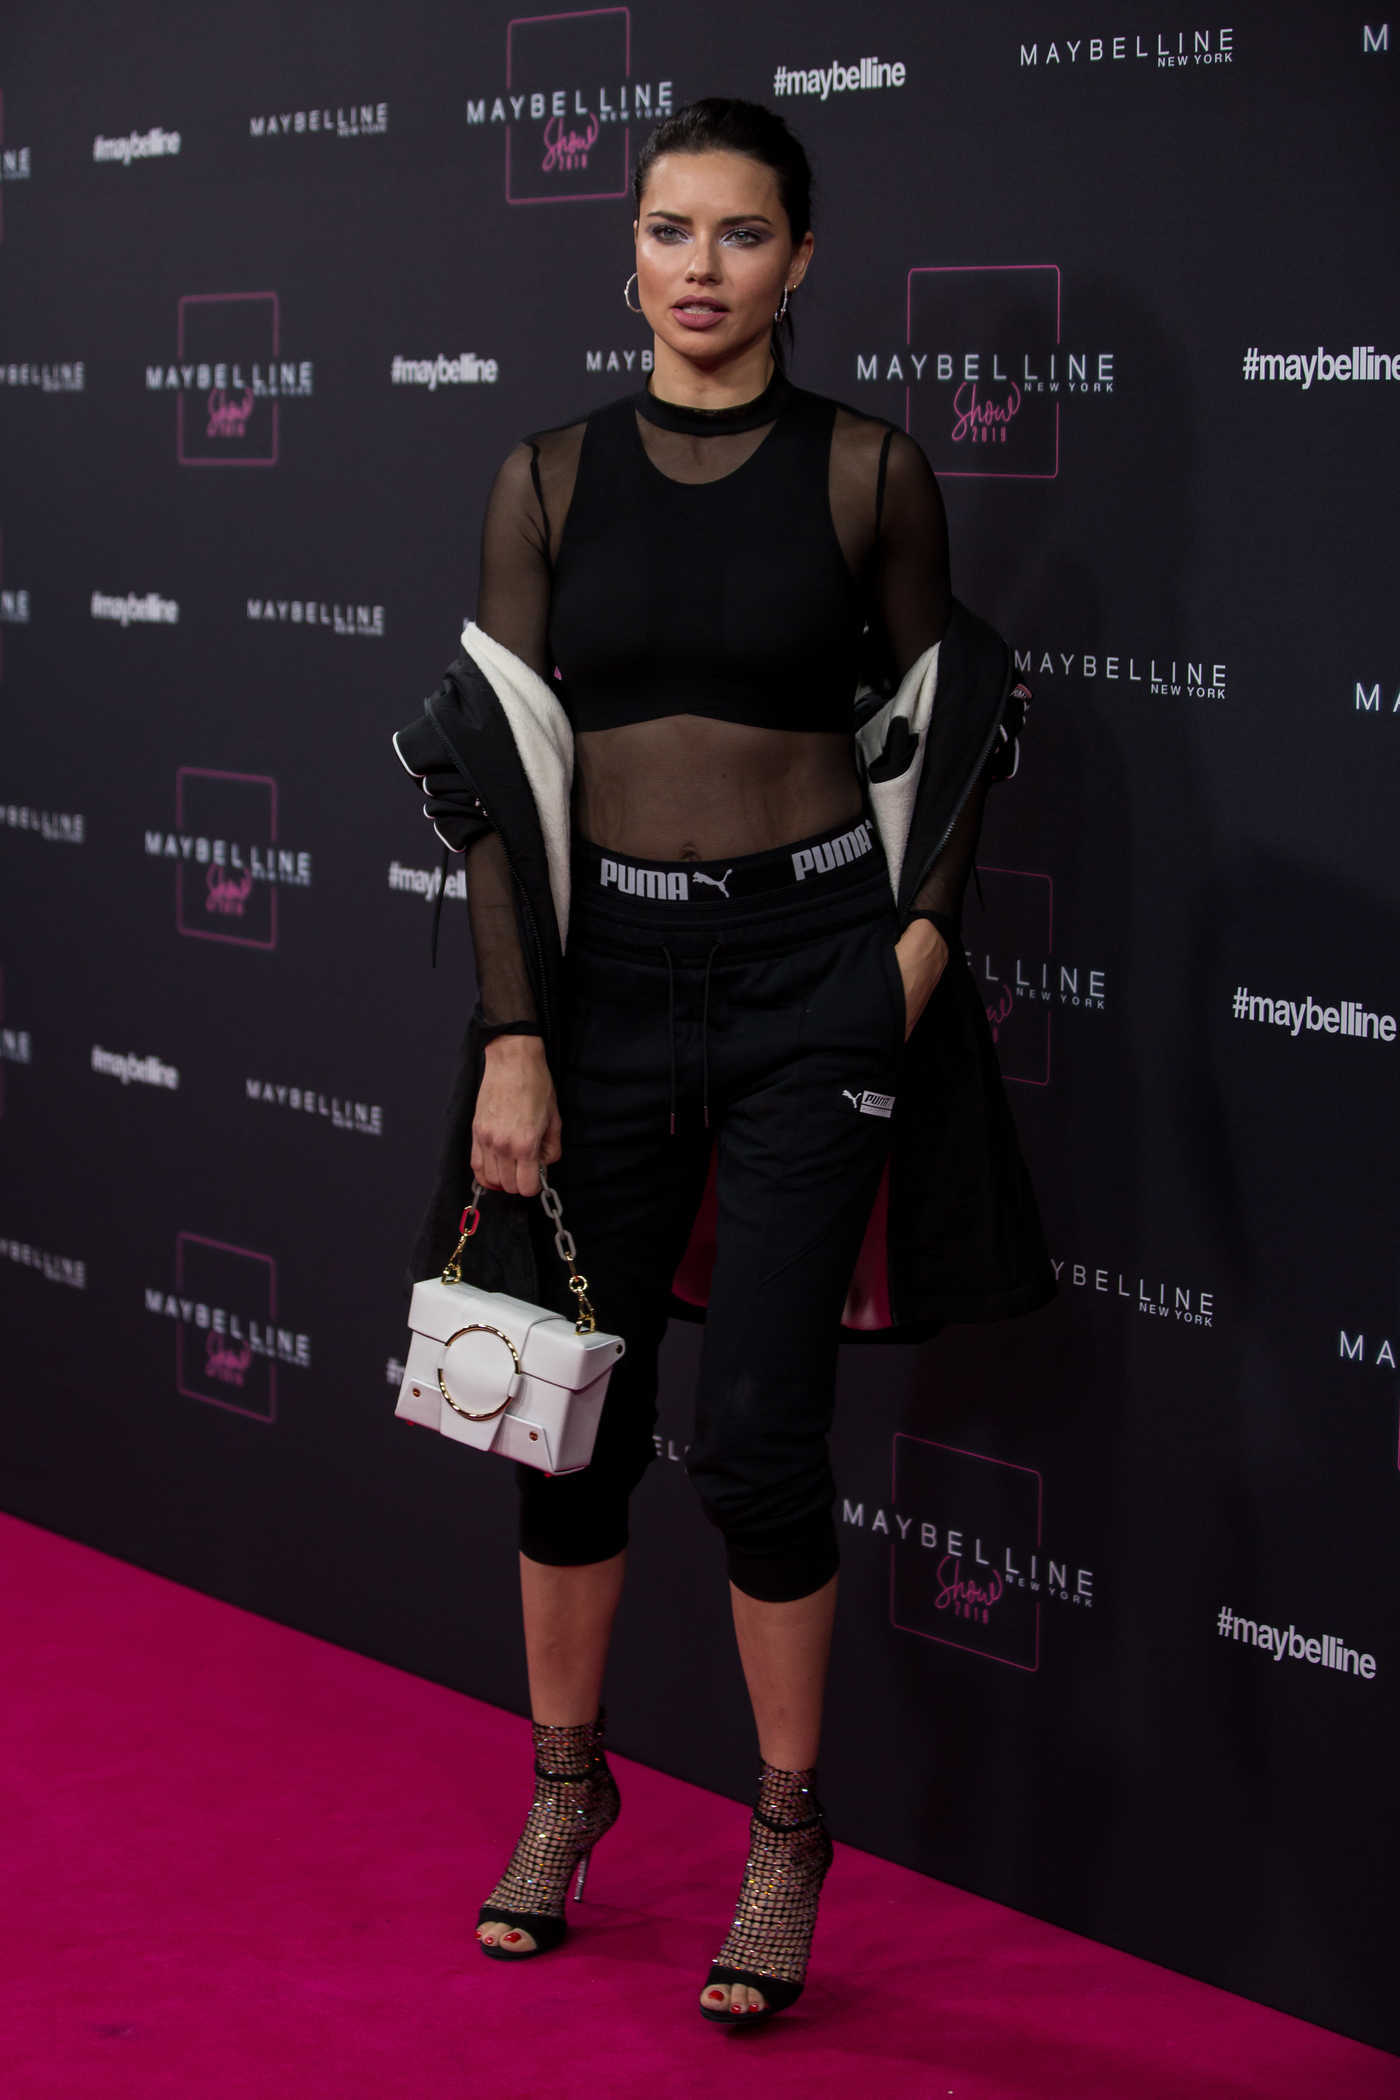 Adriana Lima Attends Maybelline Fashion Show During the Mercedes-Benz Fashion Week in Berlin 01/17/2019